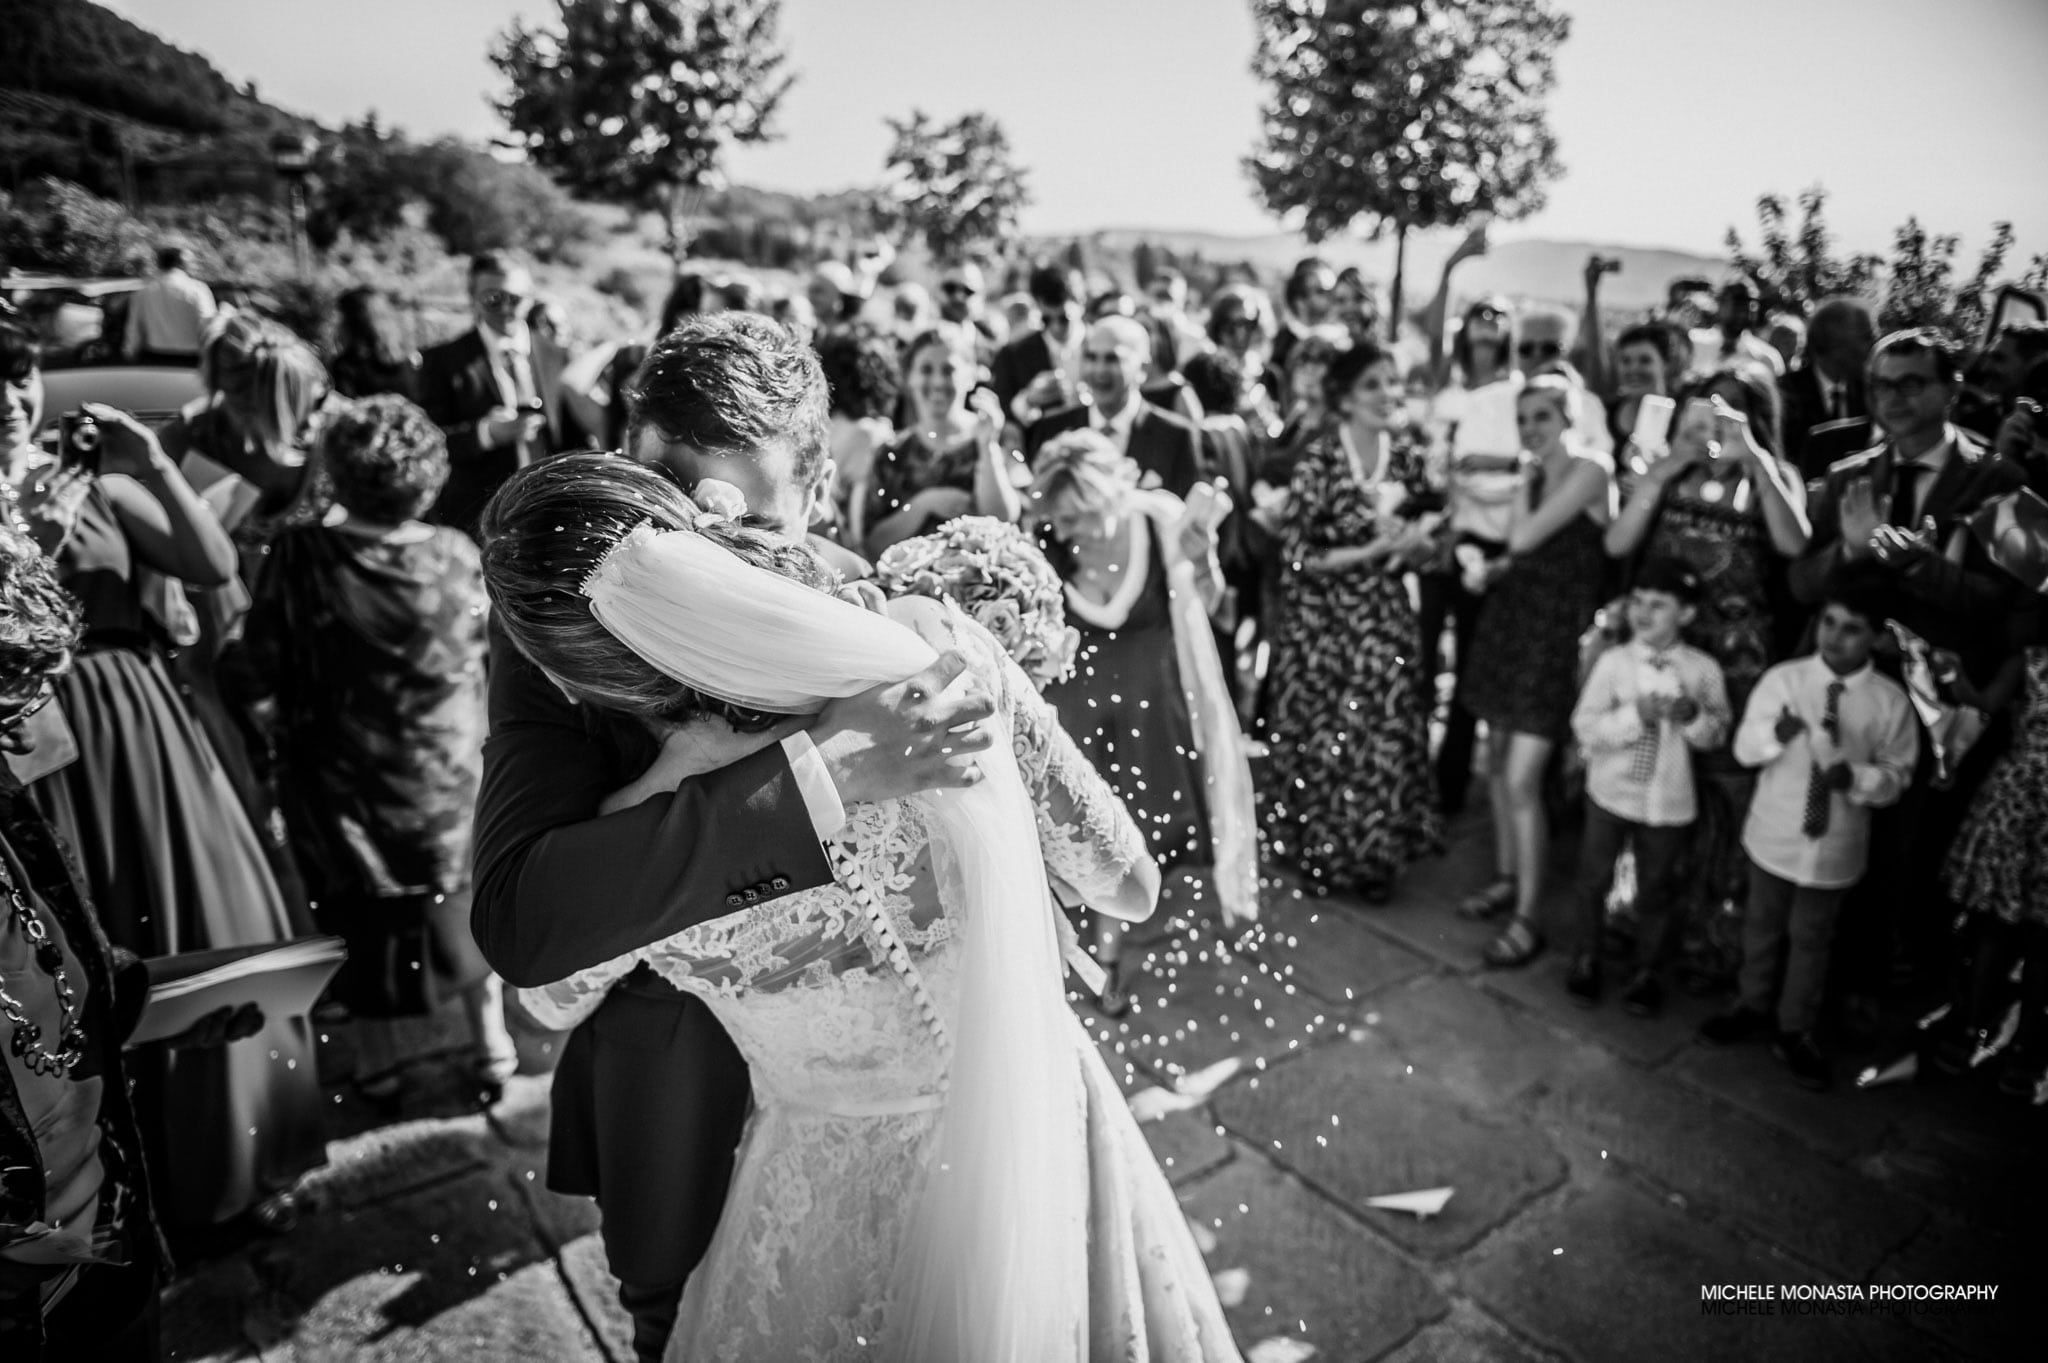 The groom and the bride kiss as soon as they leave the church after a italian wedding in tuscany